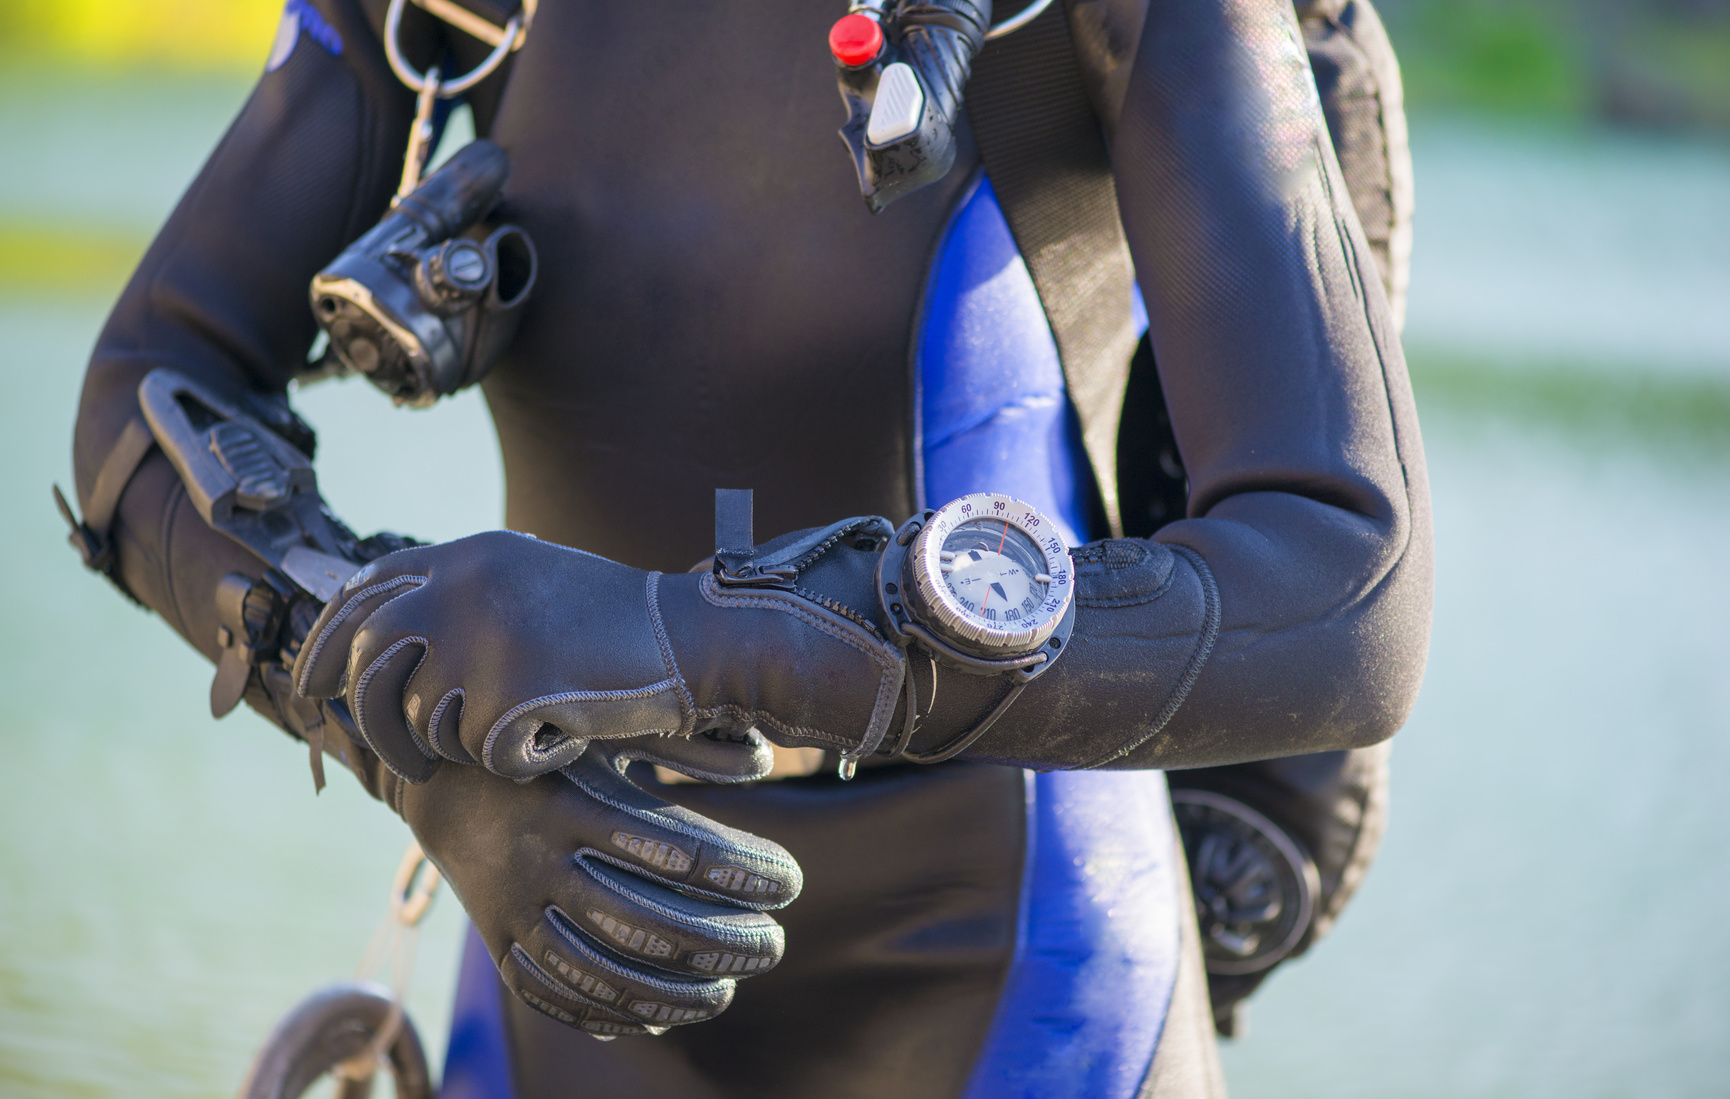 Woman in wetsuit